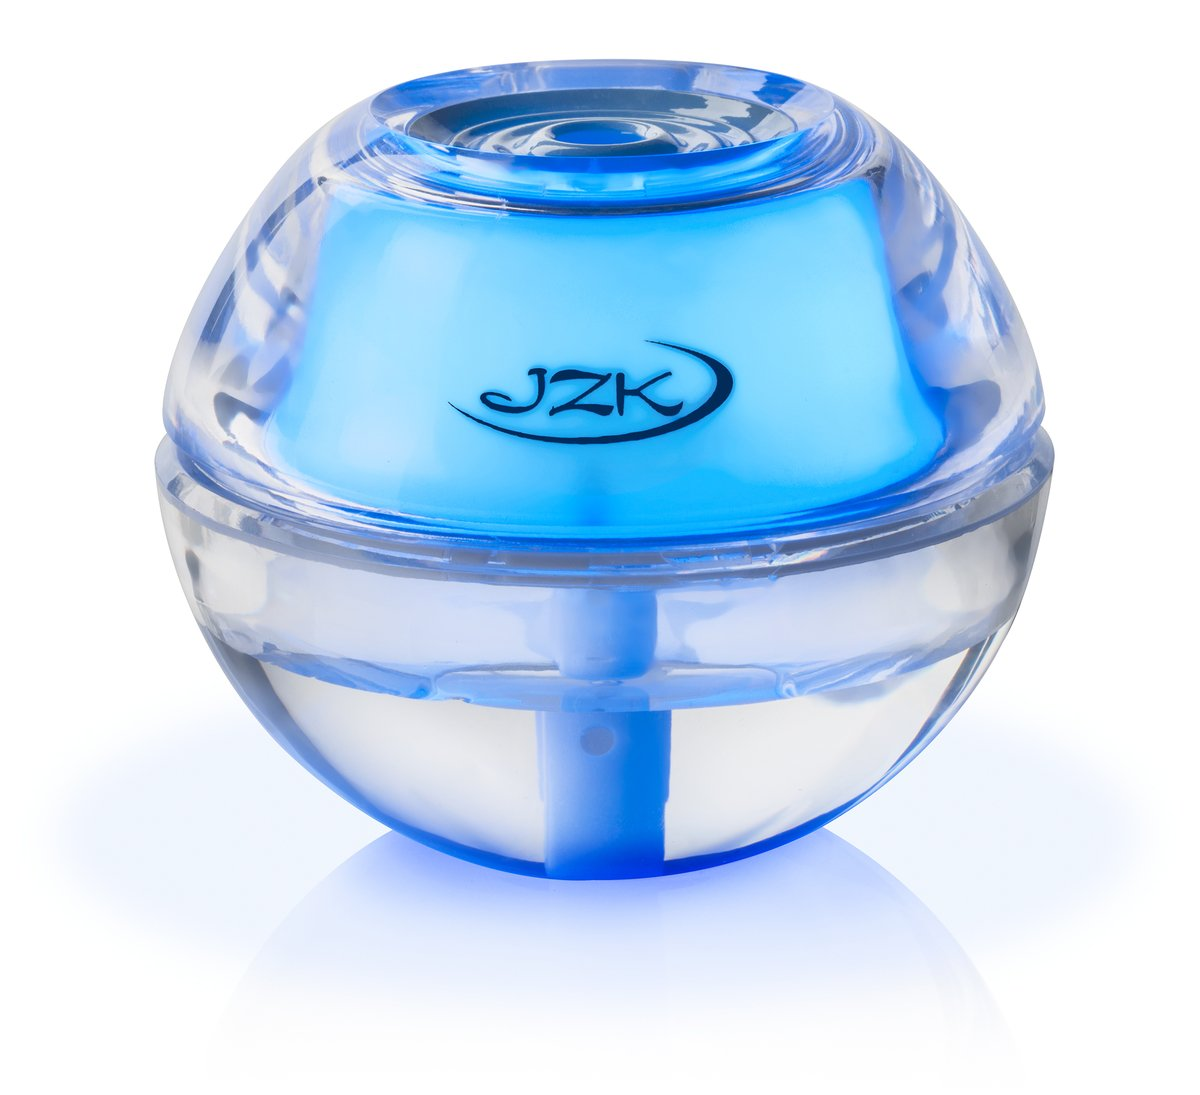 JZK Mini Portable Personal Cool Mist Air Humidifier Diffuser with Blue Night Light for Travel, Desk, Throat, Nose 4-8 Hours